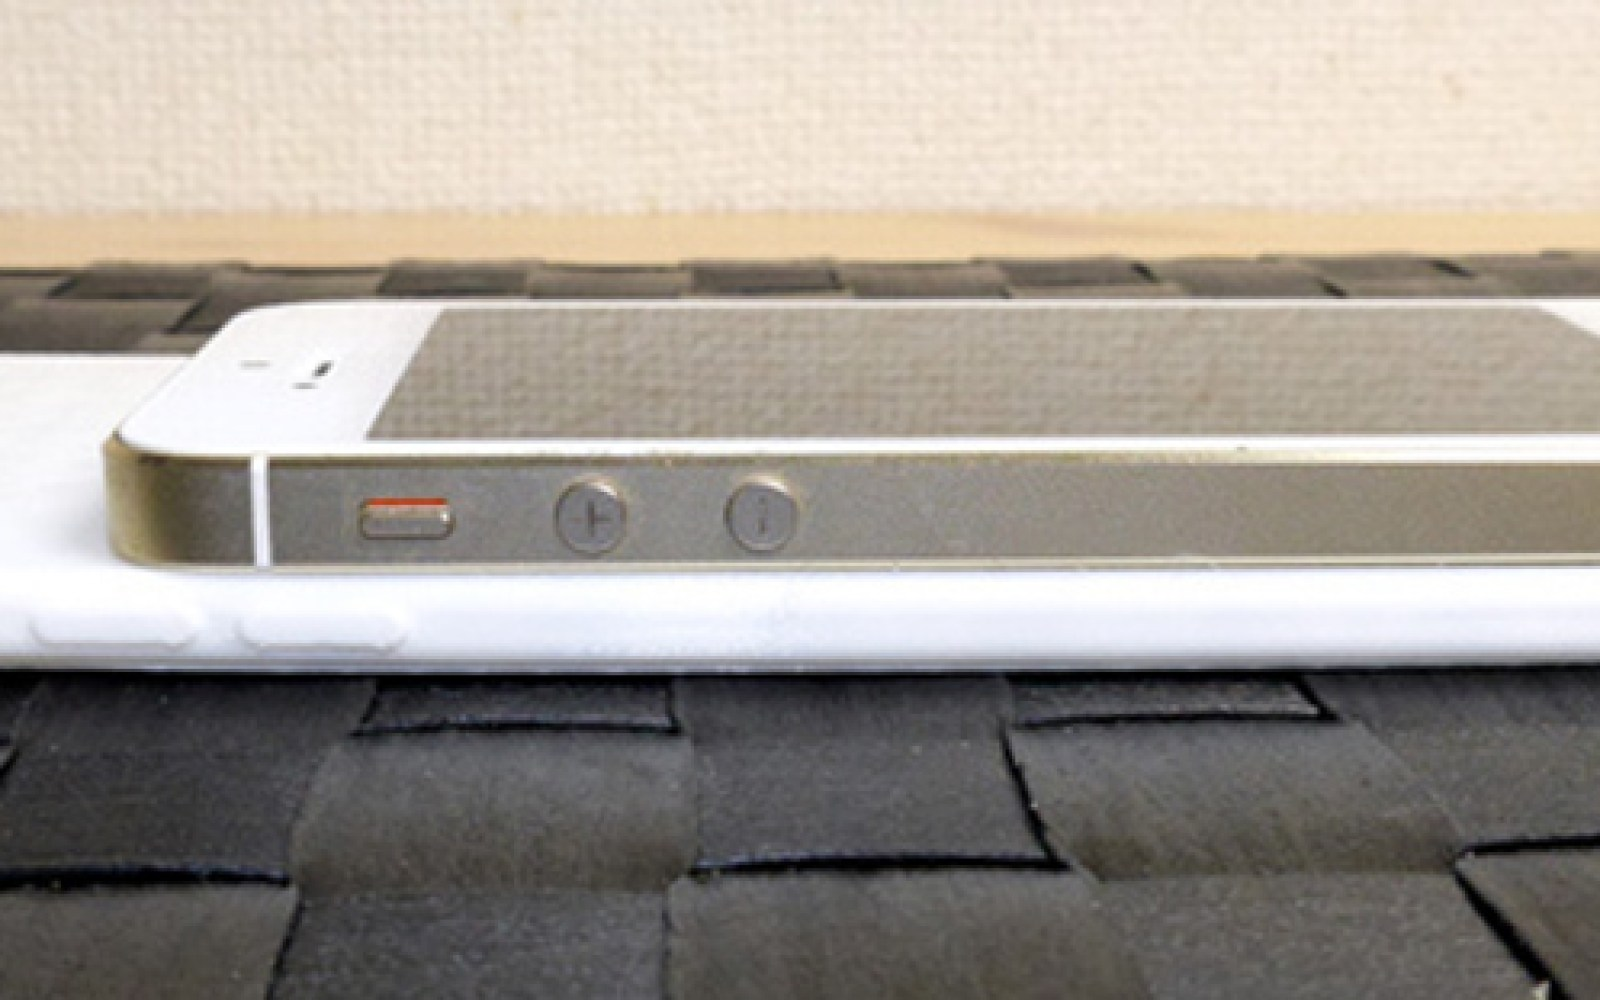 Crude 3D-printed mockup compares size of monster 5.5-inch iPhone 6 to iPhone 5S